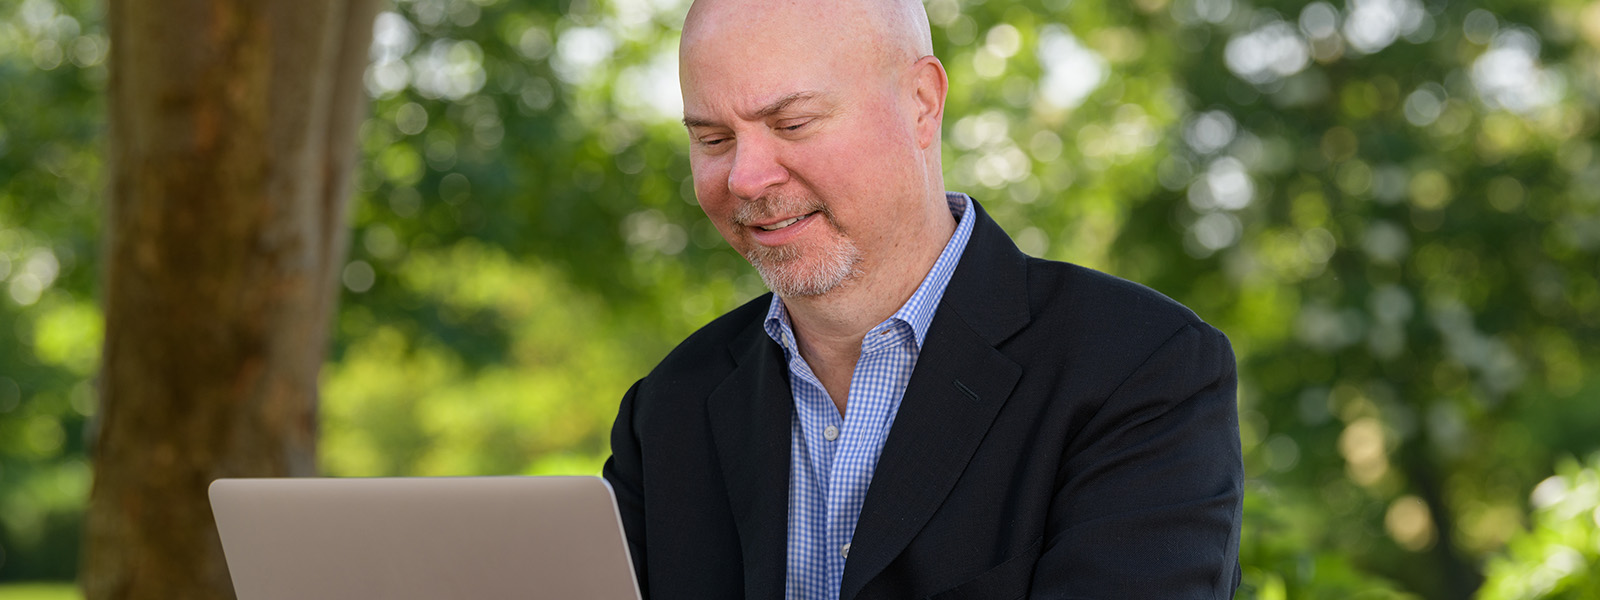 Tom Nesterak on laptop outdoors